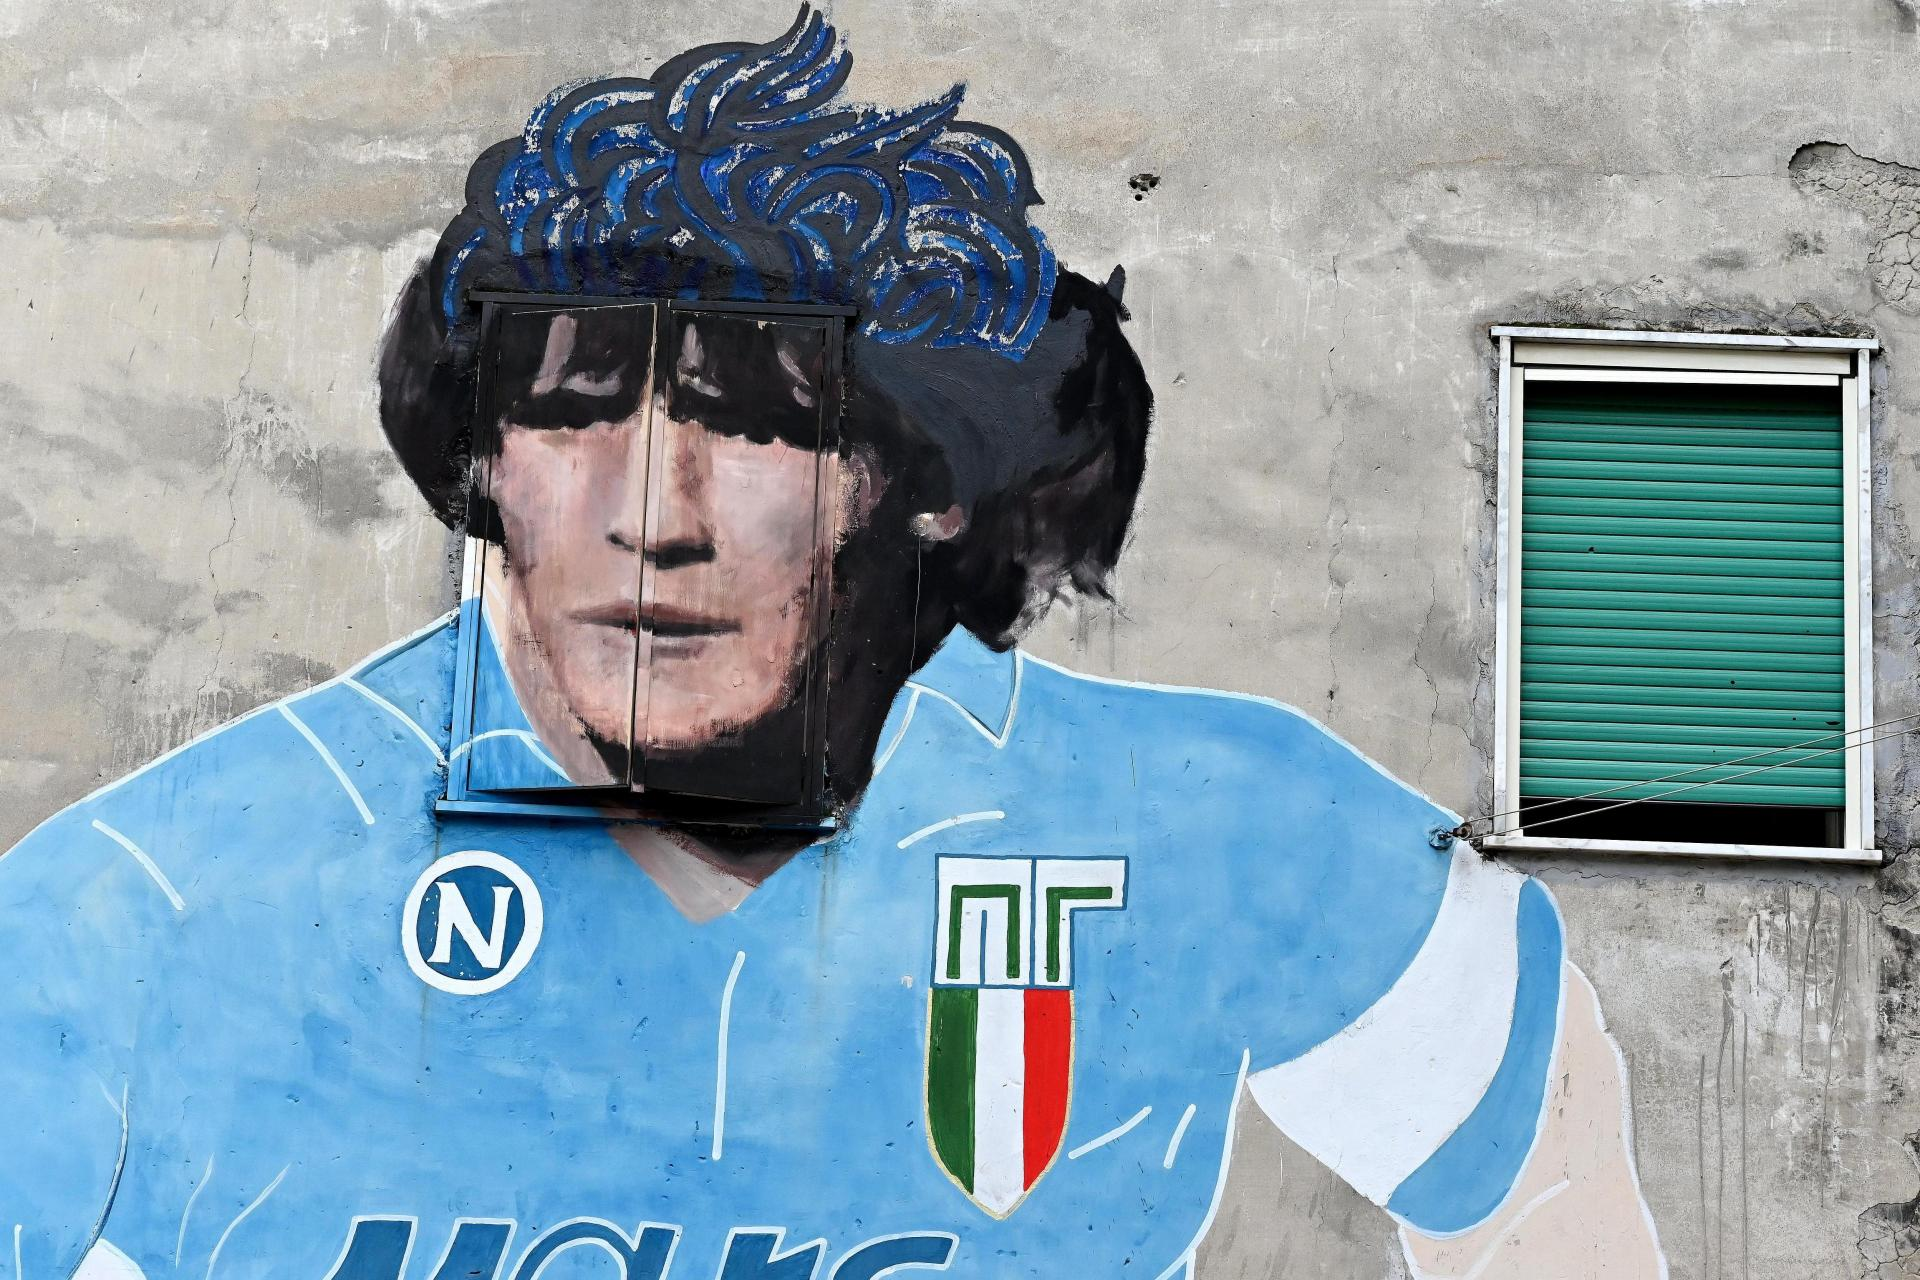 A mural of Maradona in the Italian city of Naples, where he spent his best years as a club player. Photo: AFP